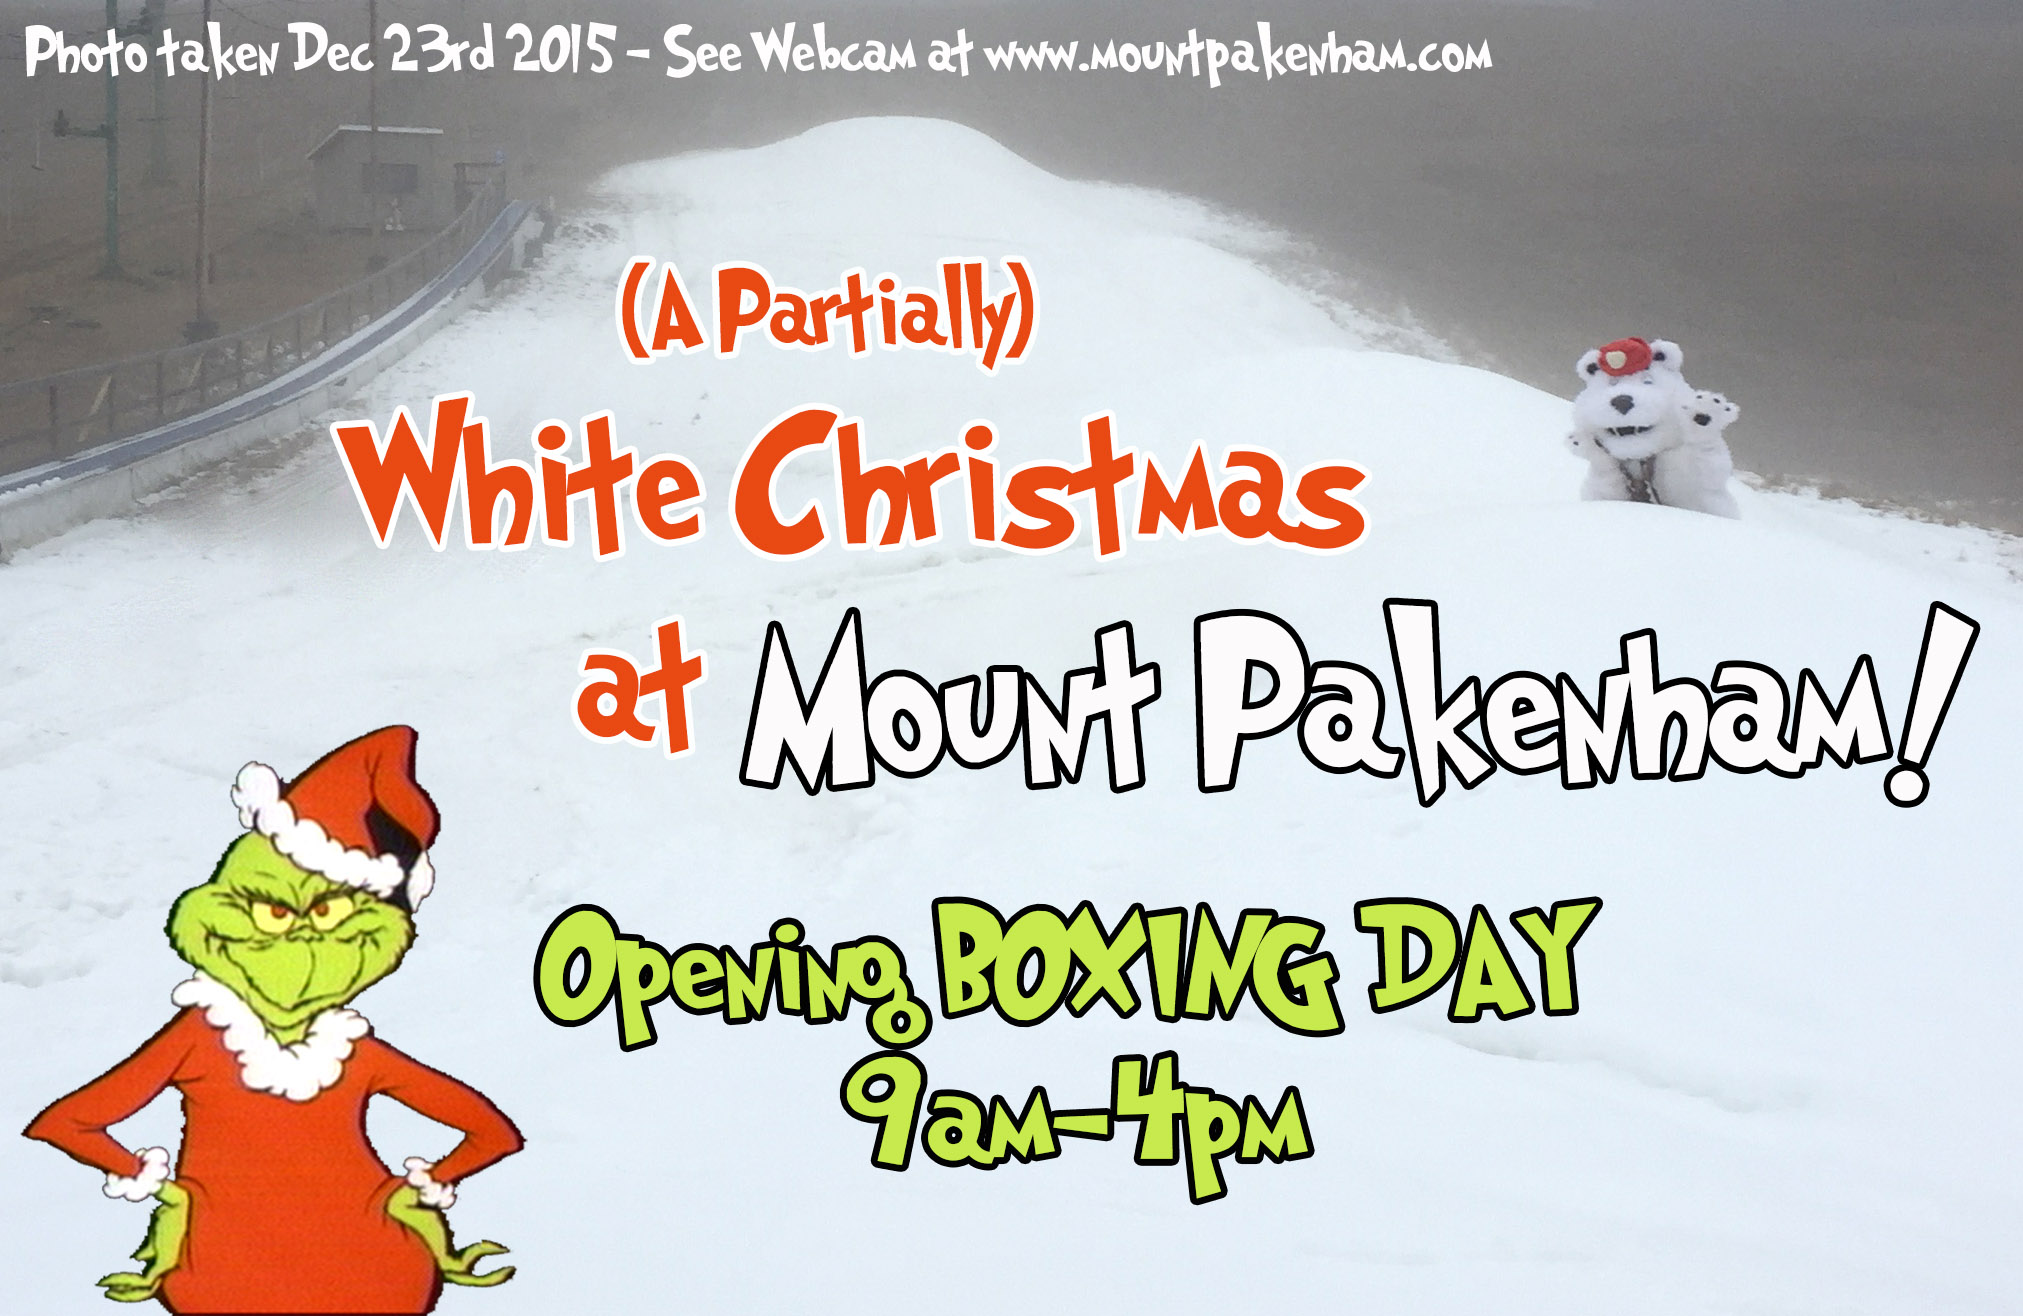 Opening Boxing Day! Best Camping Gear For You!